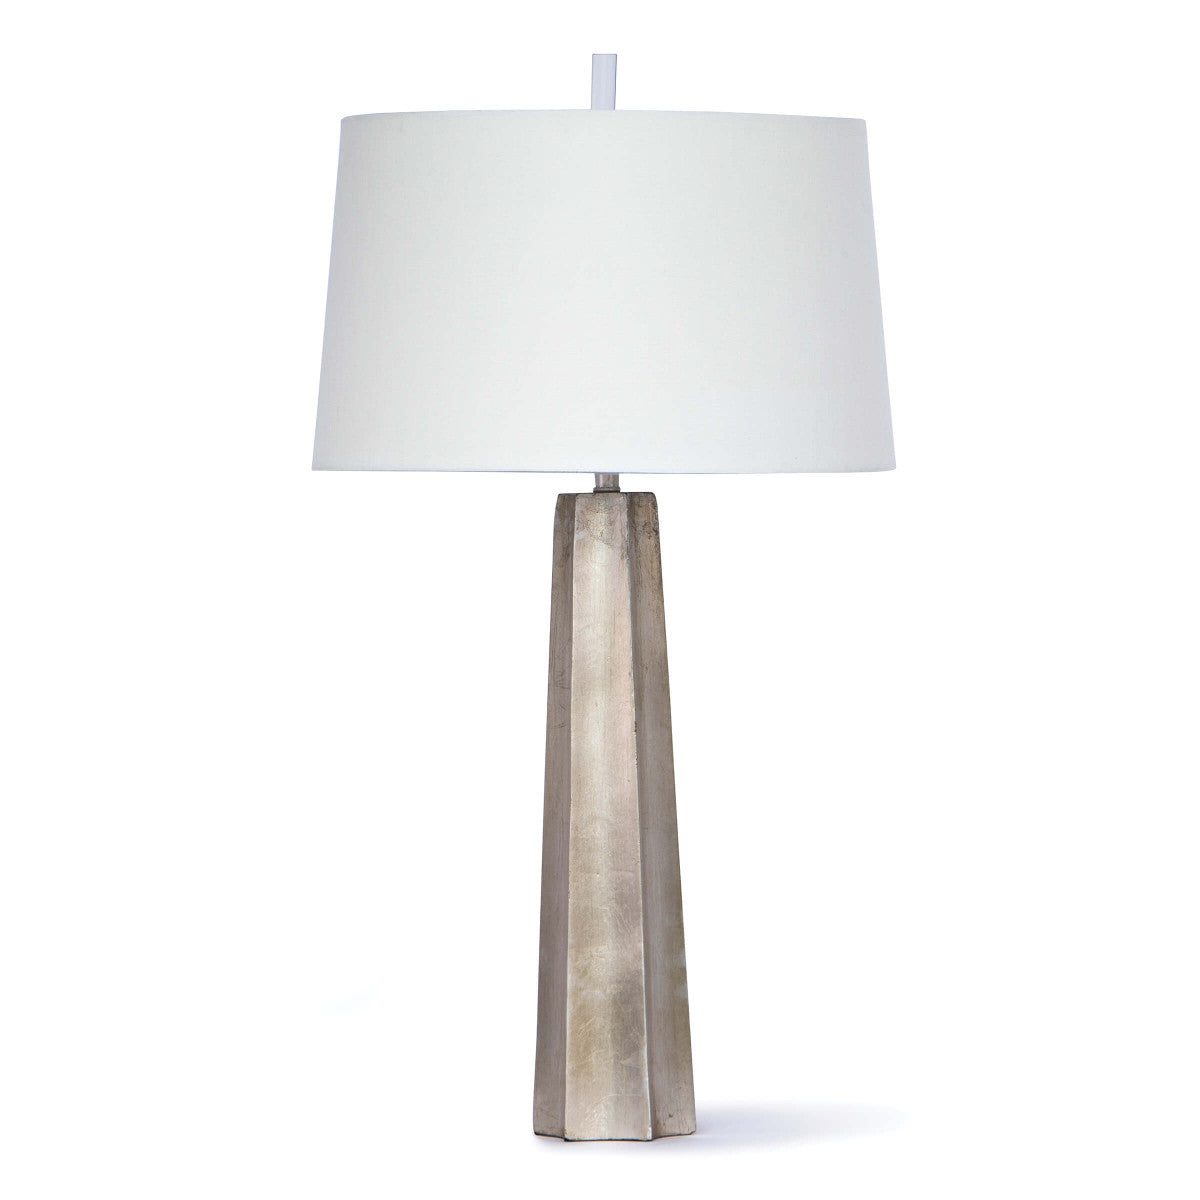 Celine Table Lamp 13-1278 - FLC Select